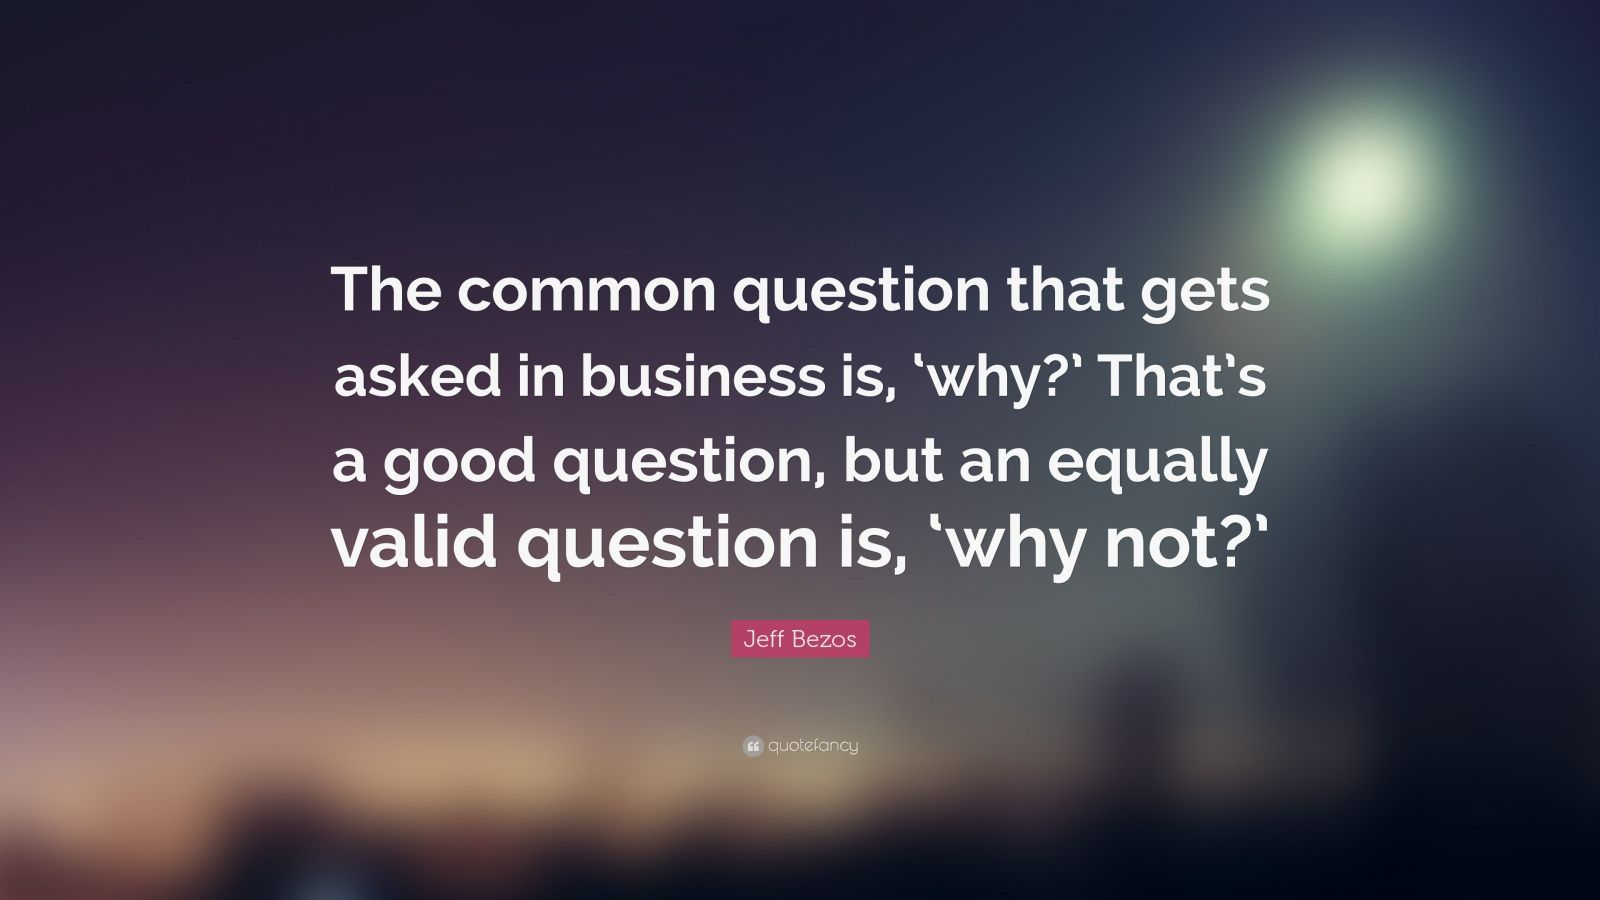 """Jeff Bezos Quote: """"The common question that gets asked in business is, 'why?' That's a good question, but an equally valid question is, 'why not?'"""""""